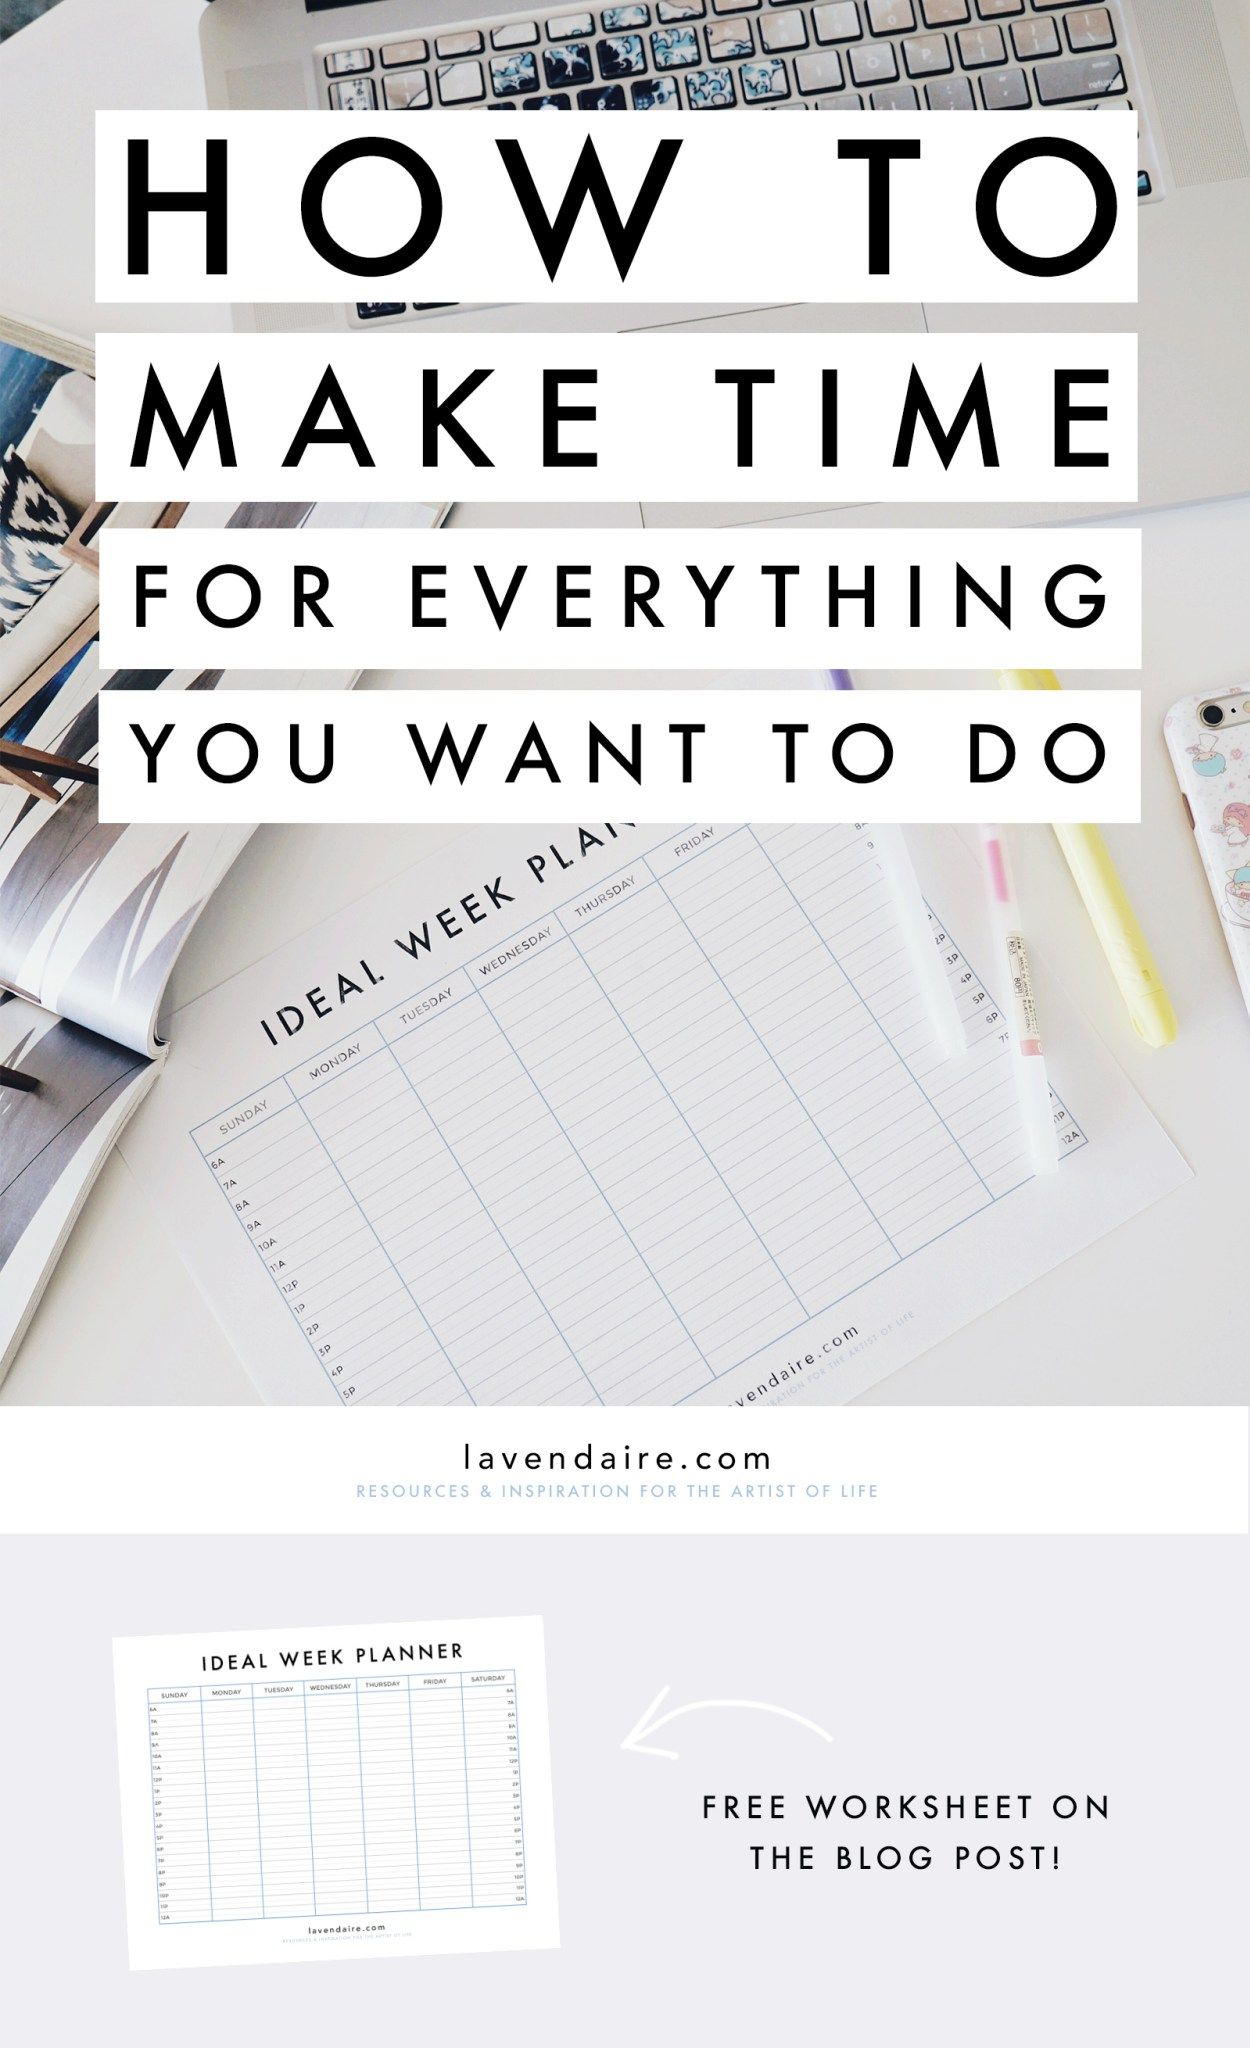 How To Make Time For Everything You Want To Do